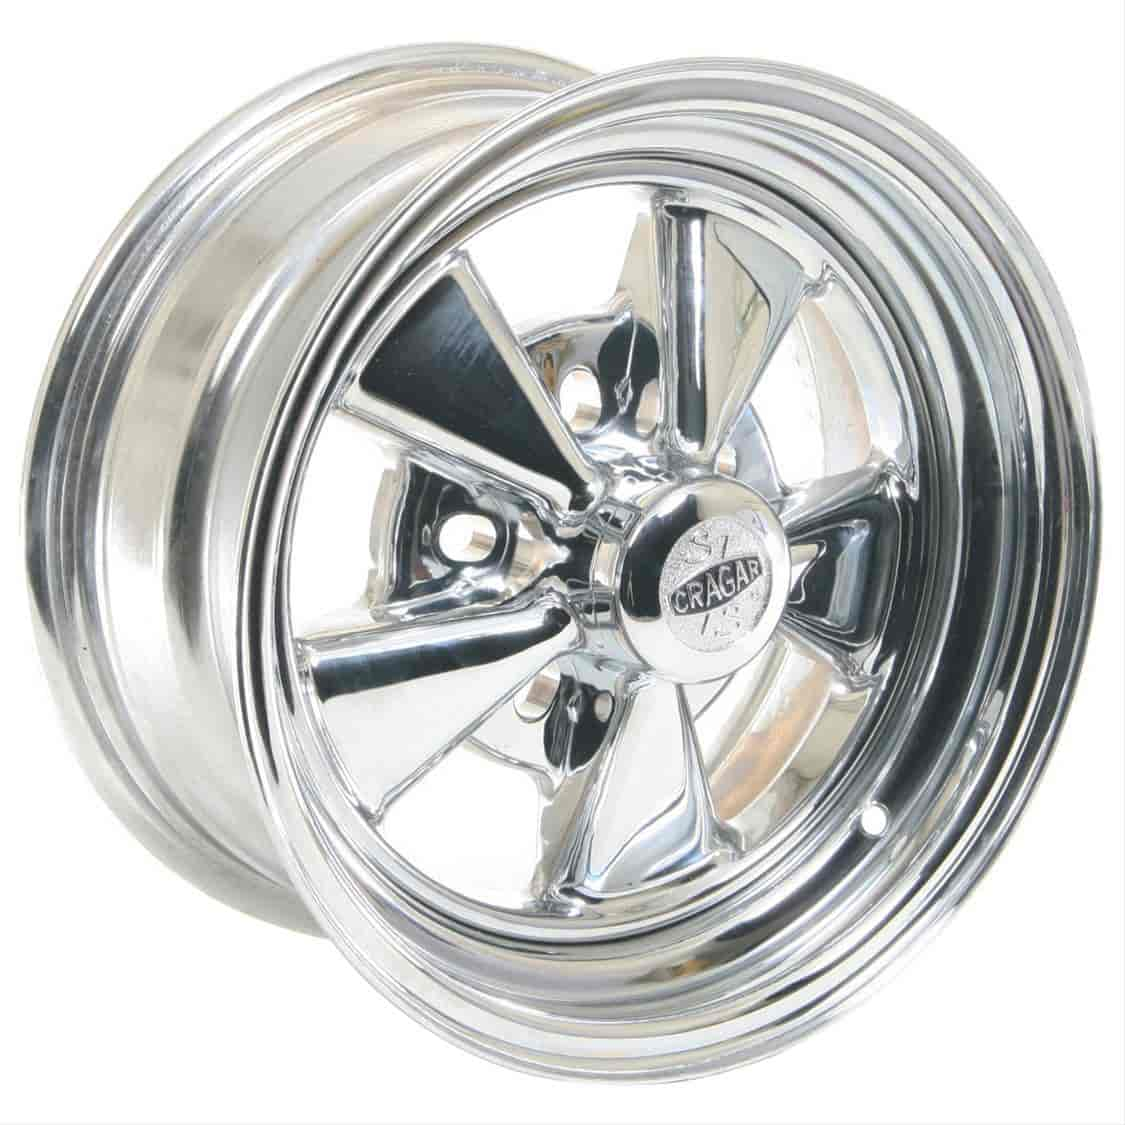 Cragar 08852 - Cragar 08/61 Series S/S Super Sport Wheels